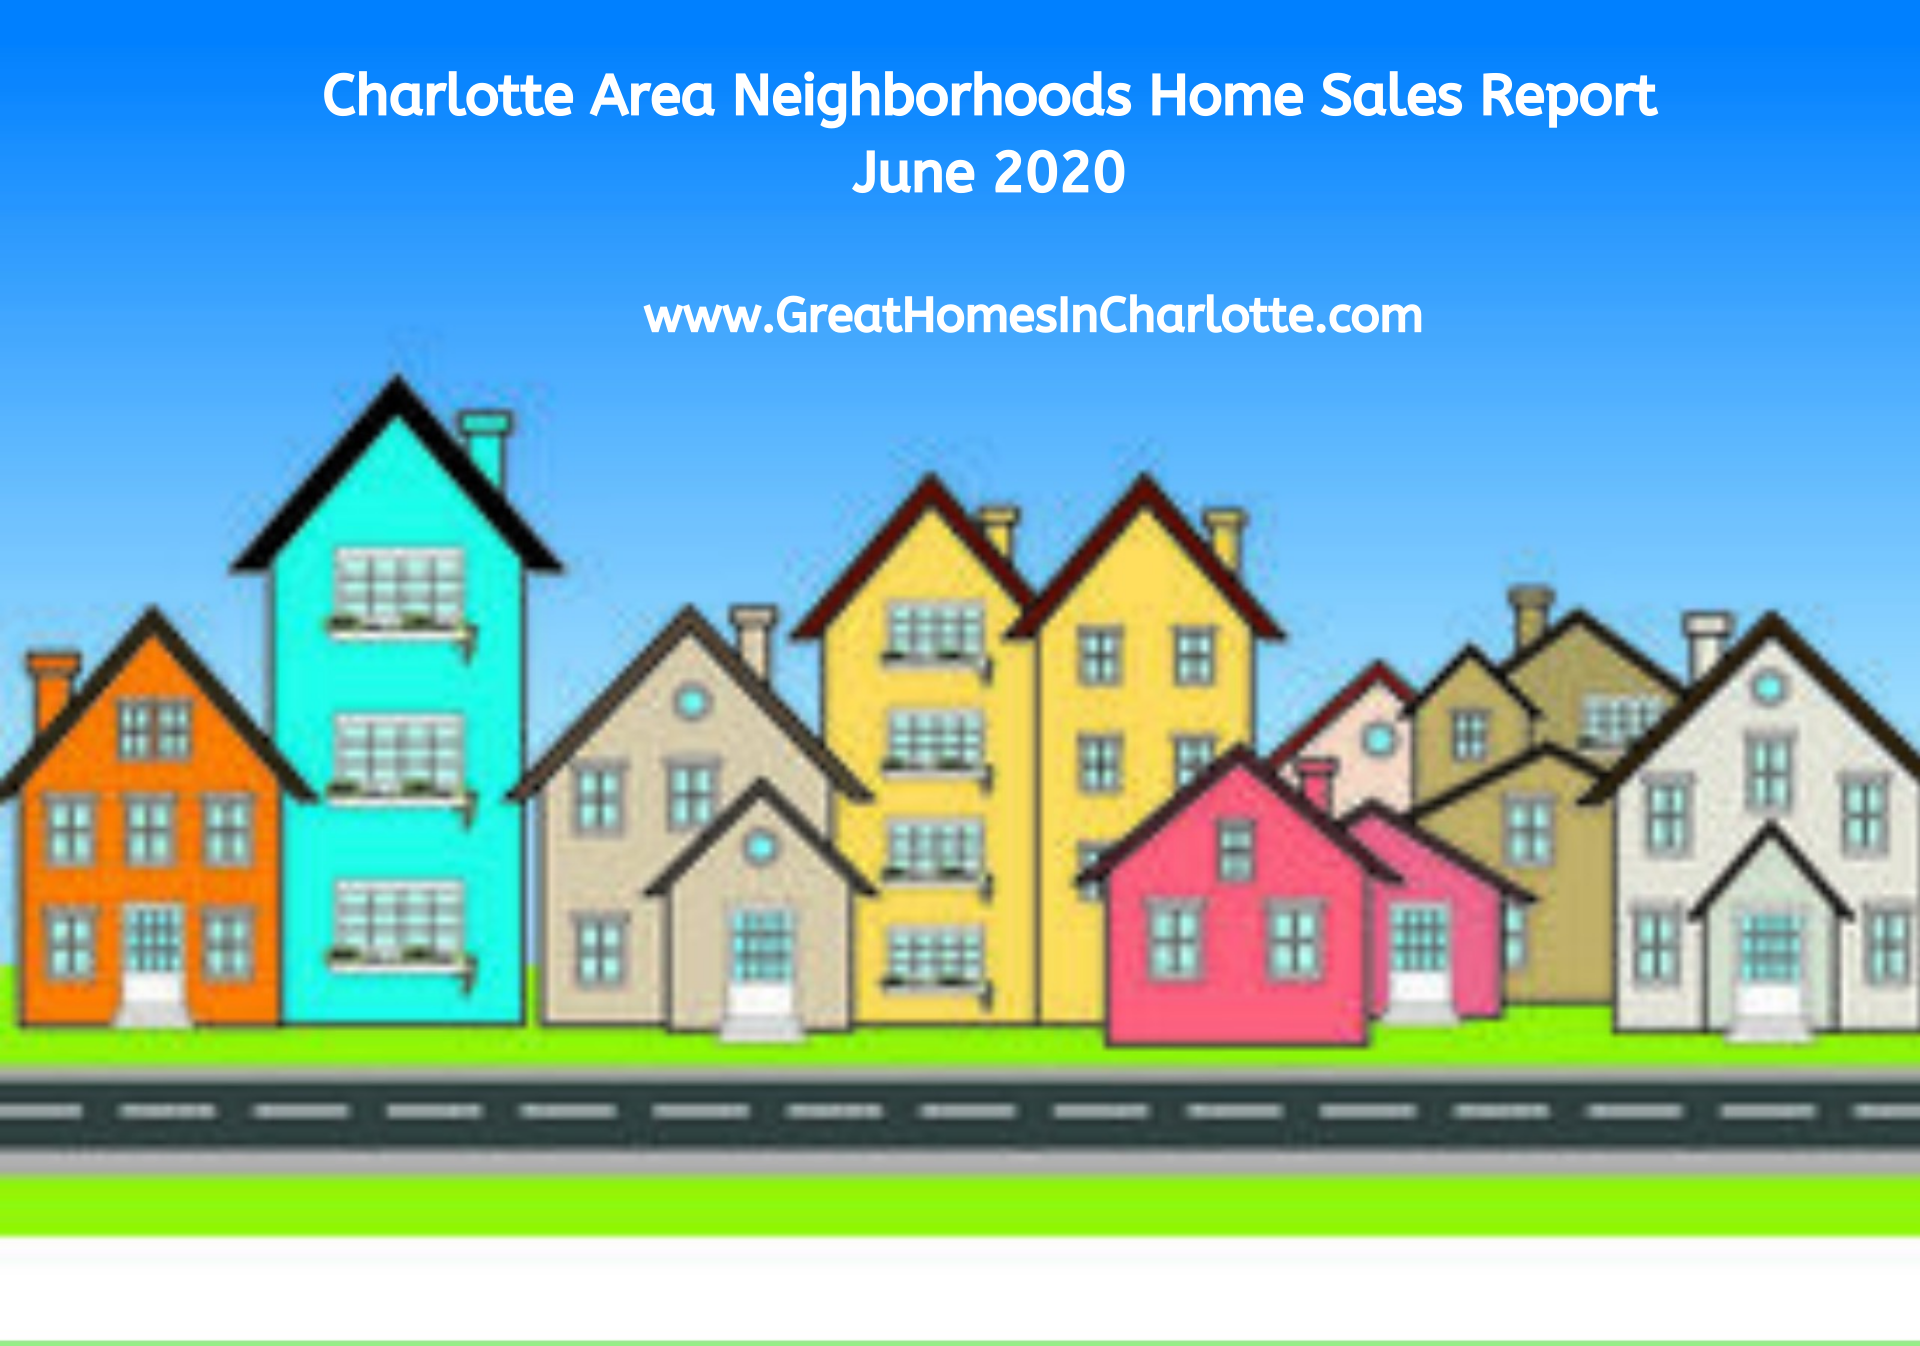 Hottest Selling Charlotte Area Neighborhoods In June 2020